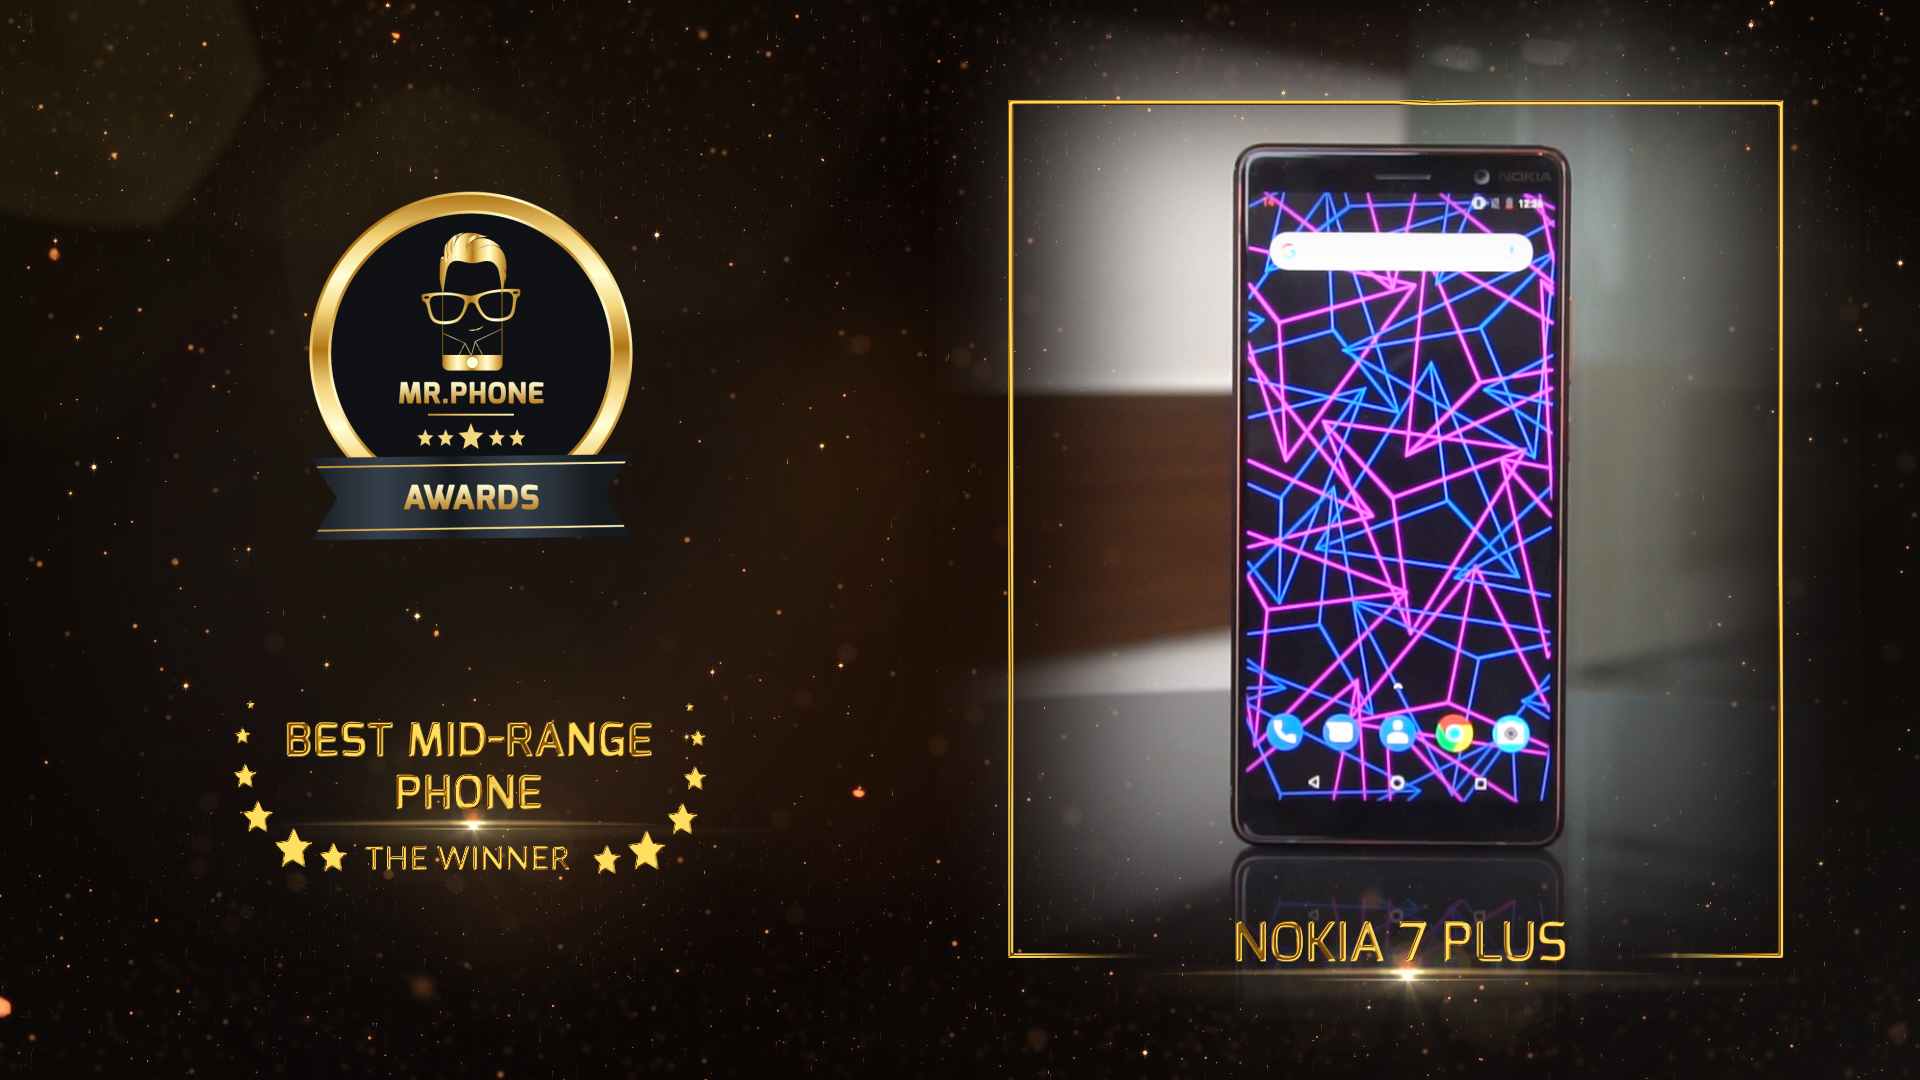 Mr. Phone Best Mid Range Phone 2018 - Nokia 7 Plus